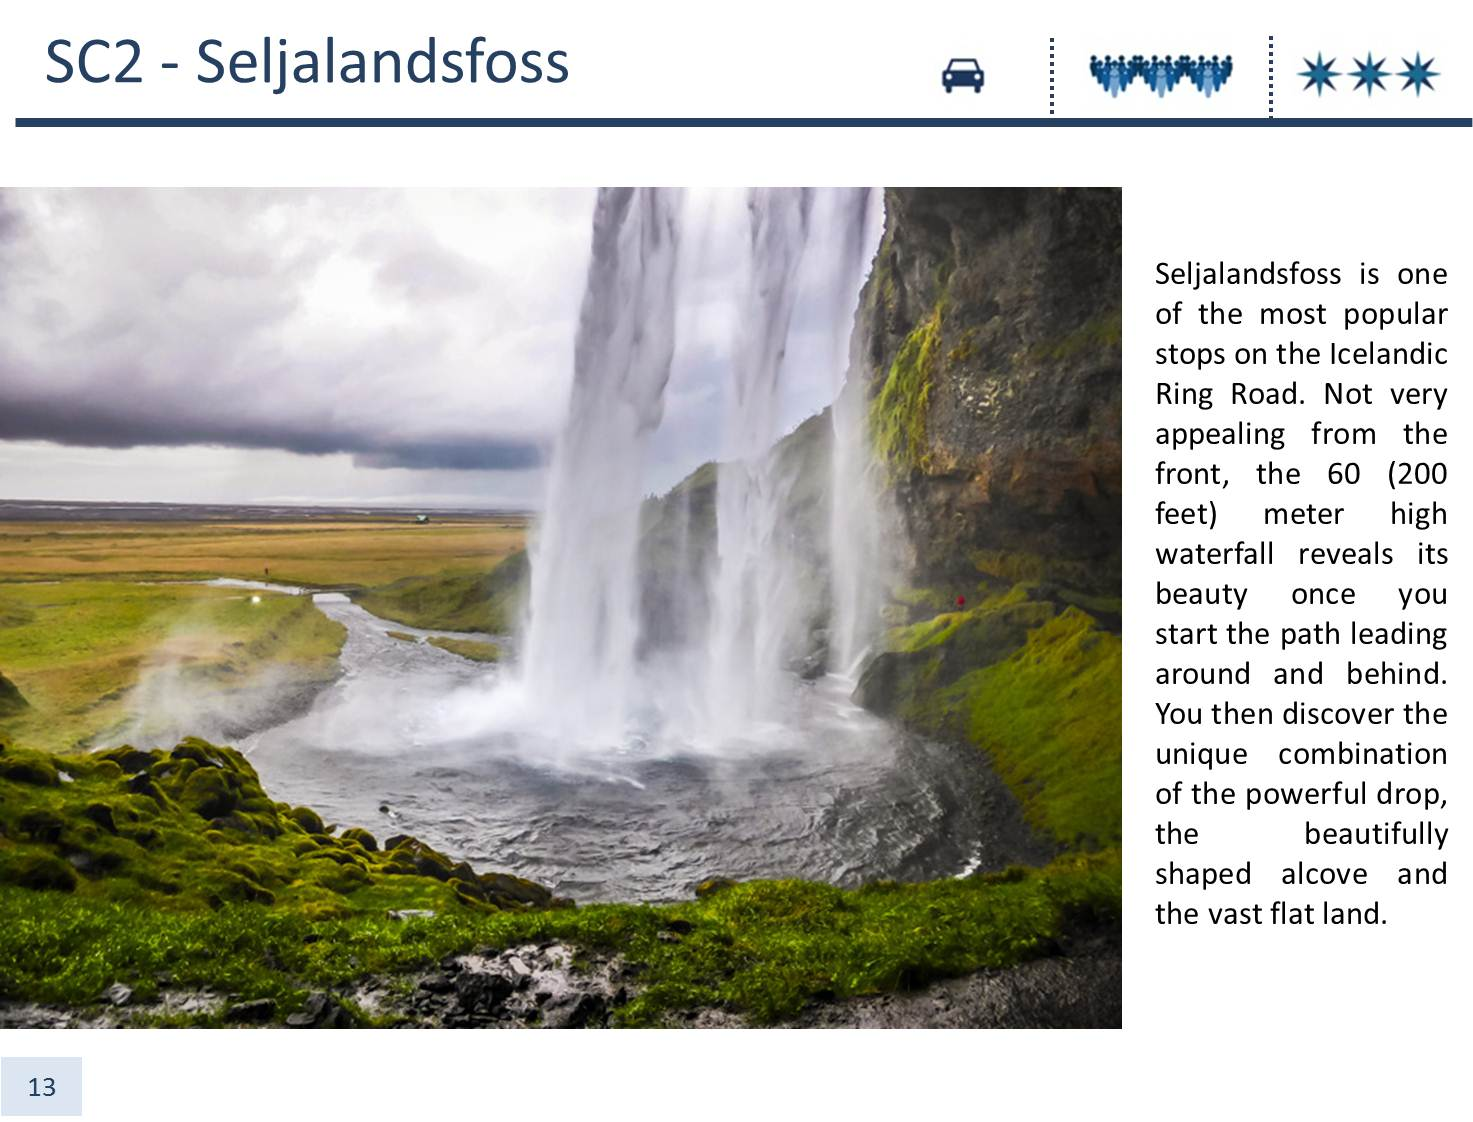 Experience Iceland travel guide - location page 1